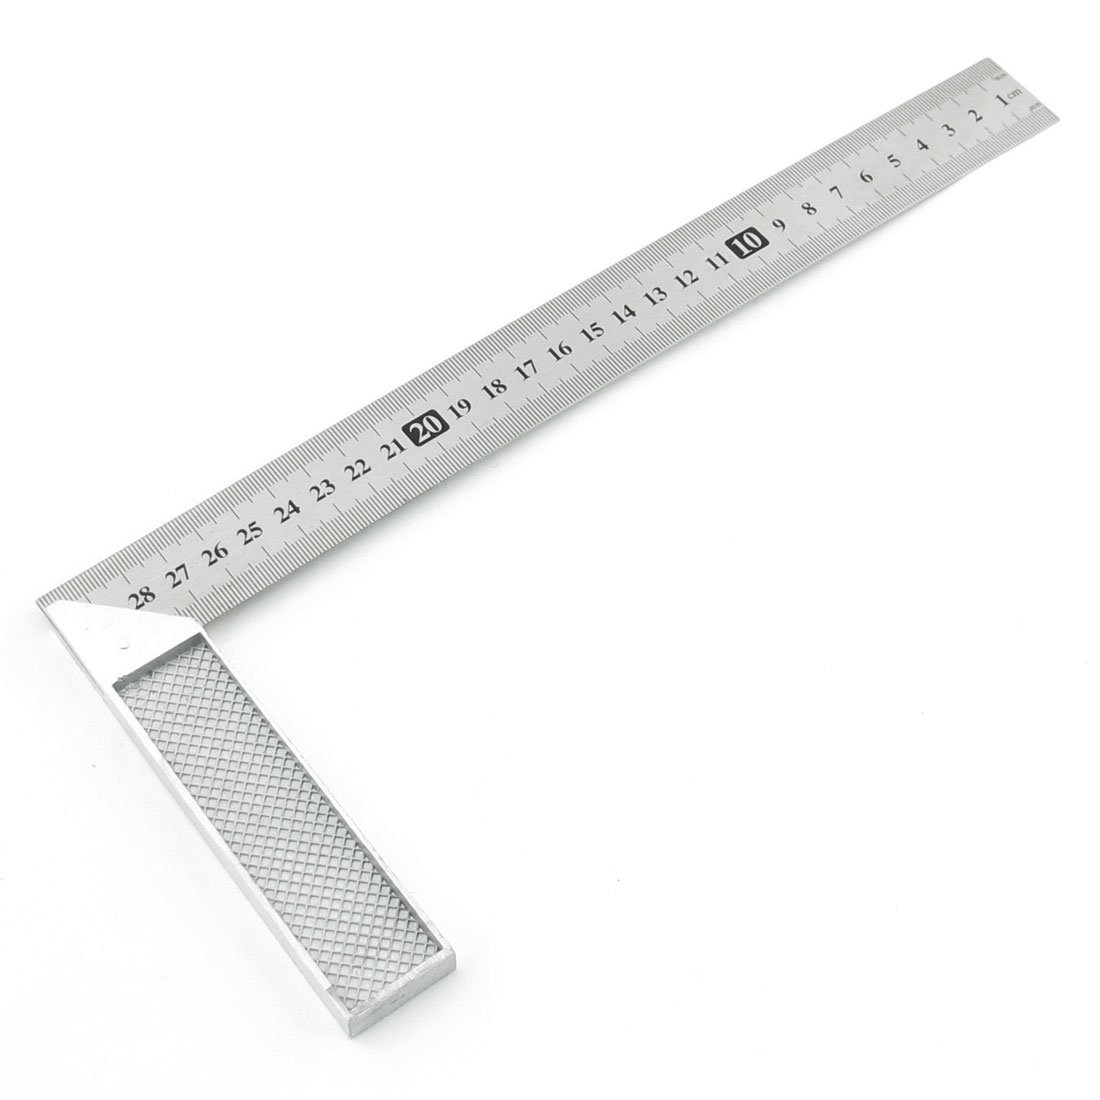 Uxcell (a13110700ux0020) Stainless Steel Right Measuring Angle Square Ruler, 30cm, Silver Tone Dragonmarts Co. Ltd. / Uxcell